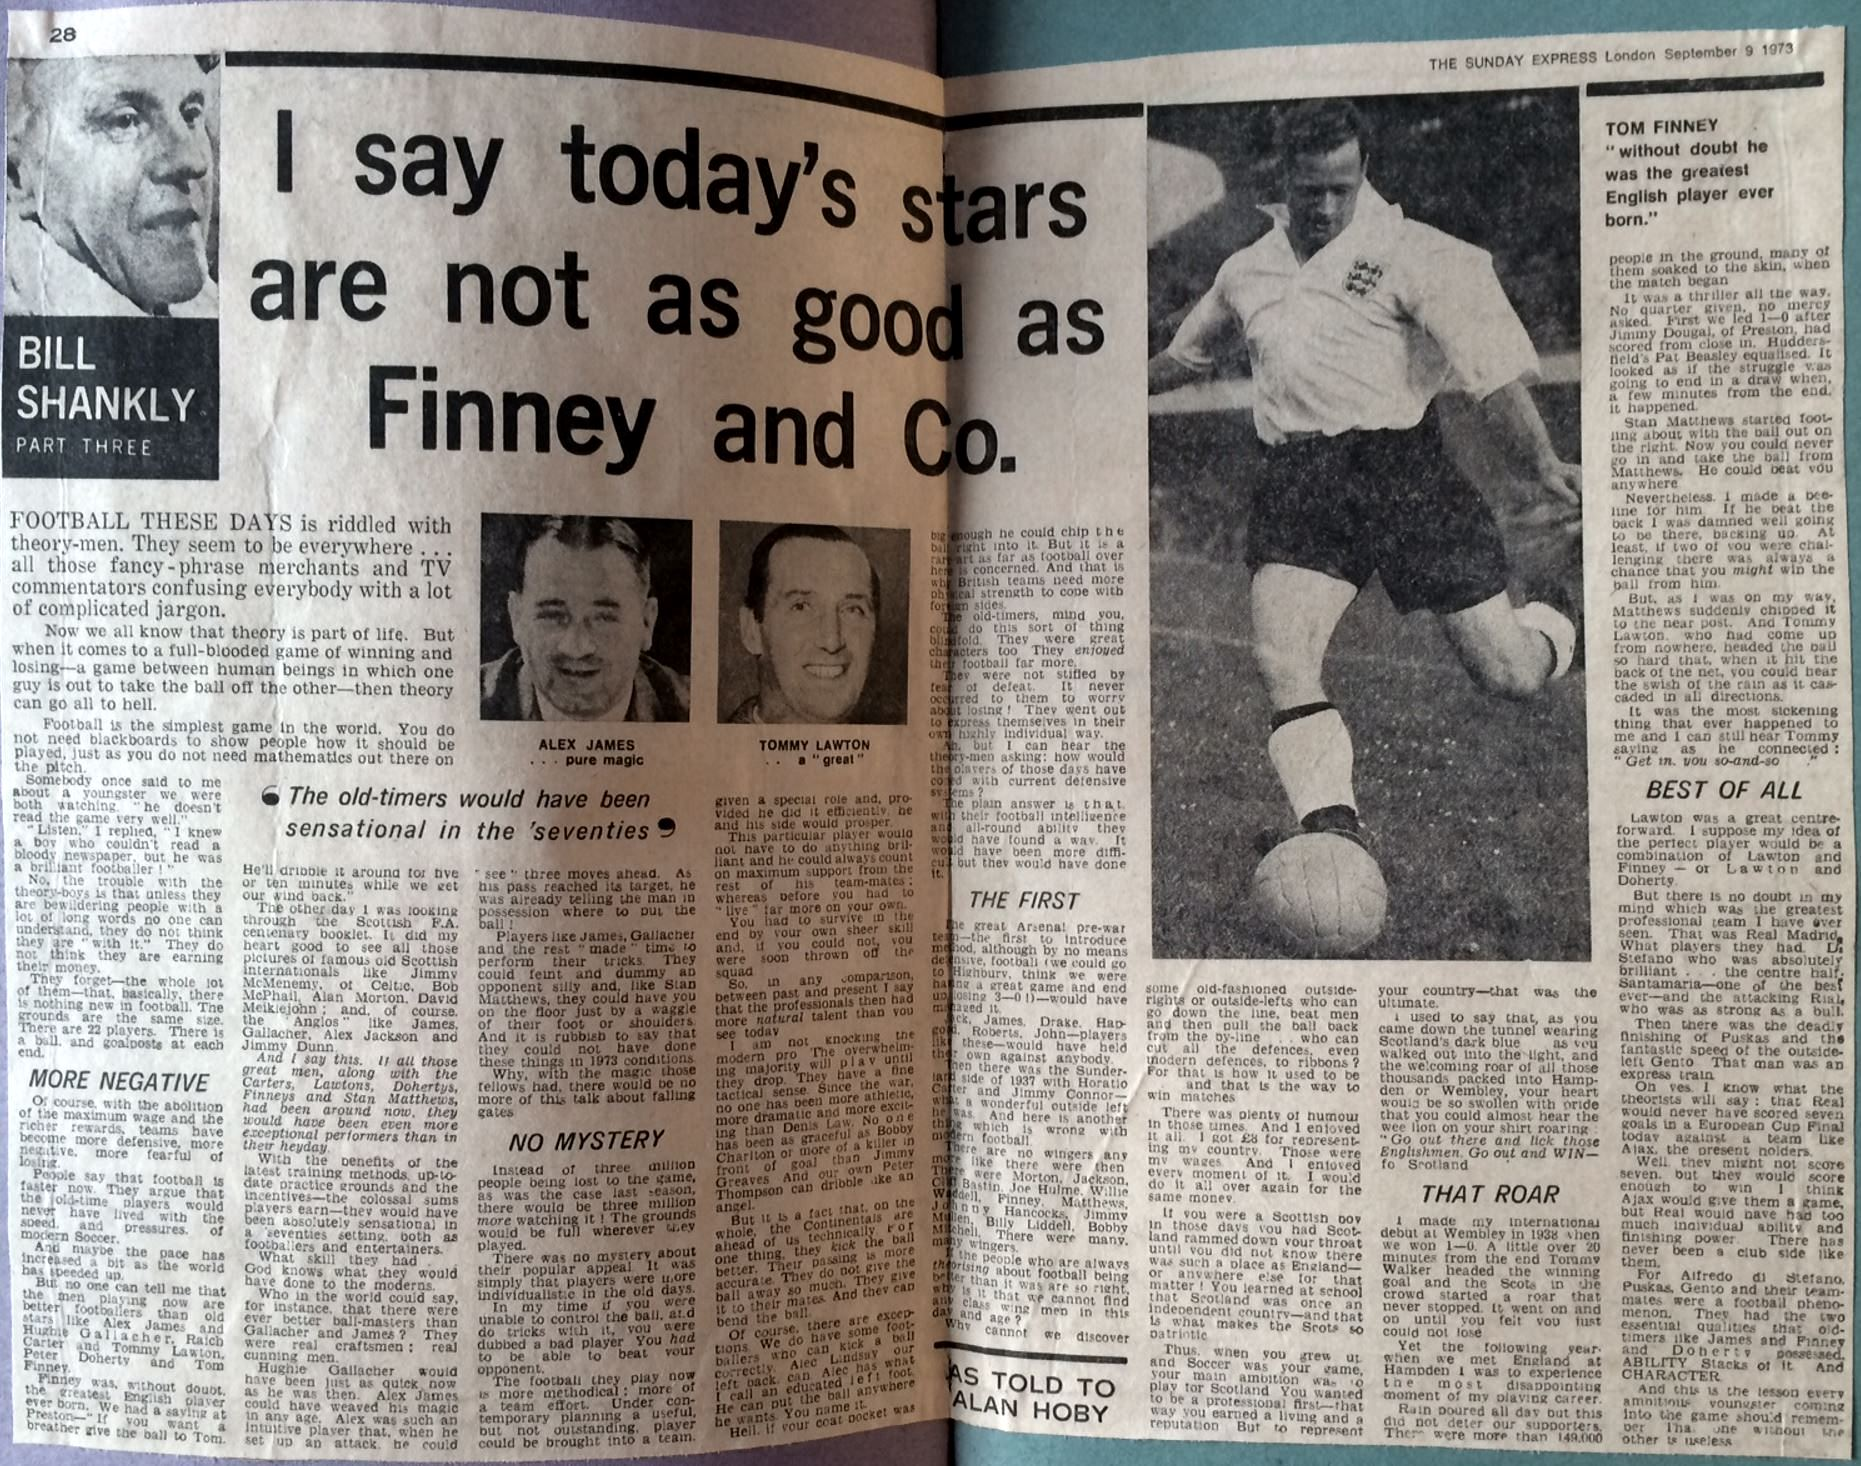 Sunday Express series in 1973 - Today's stars not as good as Finney and co.